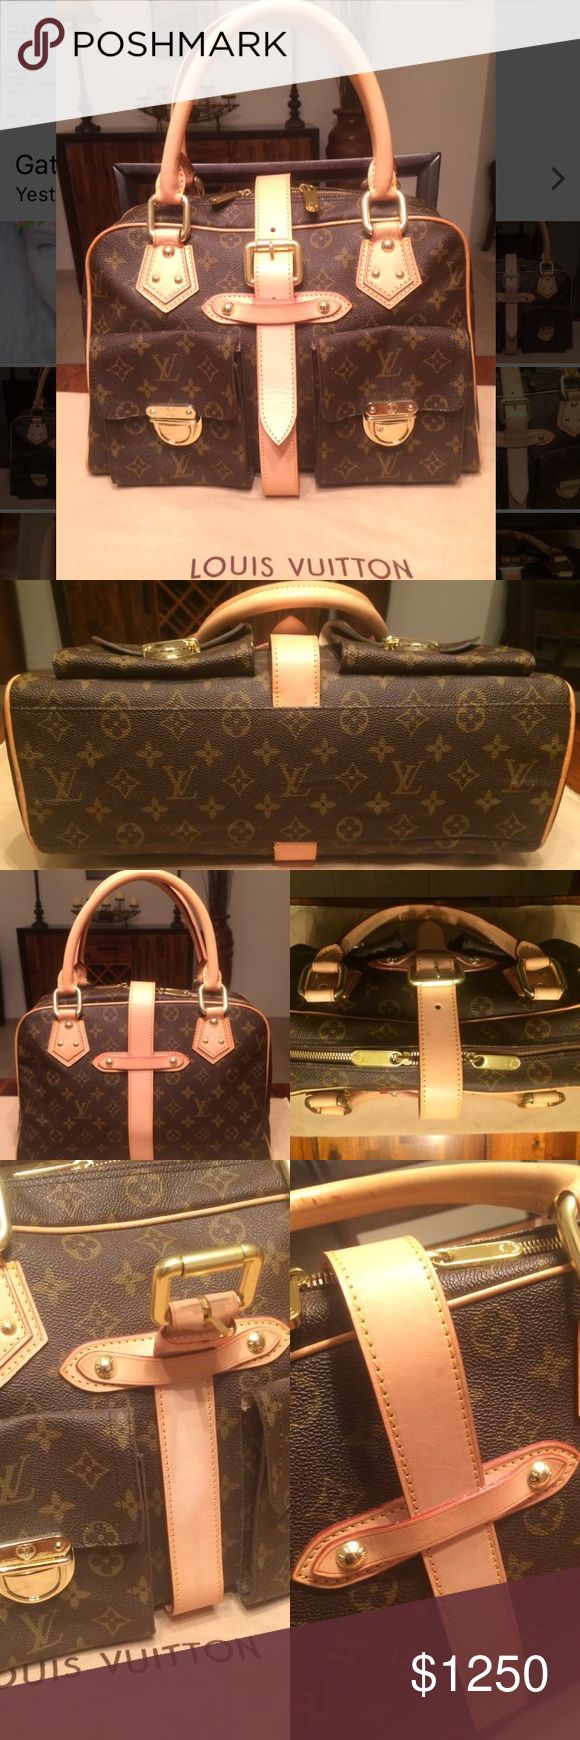 best louis vuitton images on pinterest louis vuitton handbags